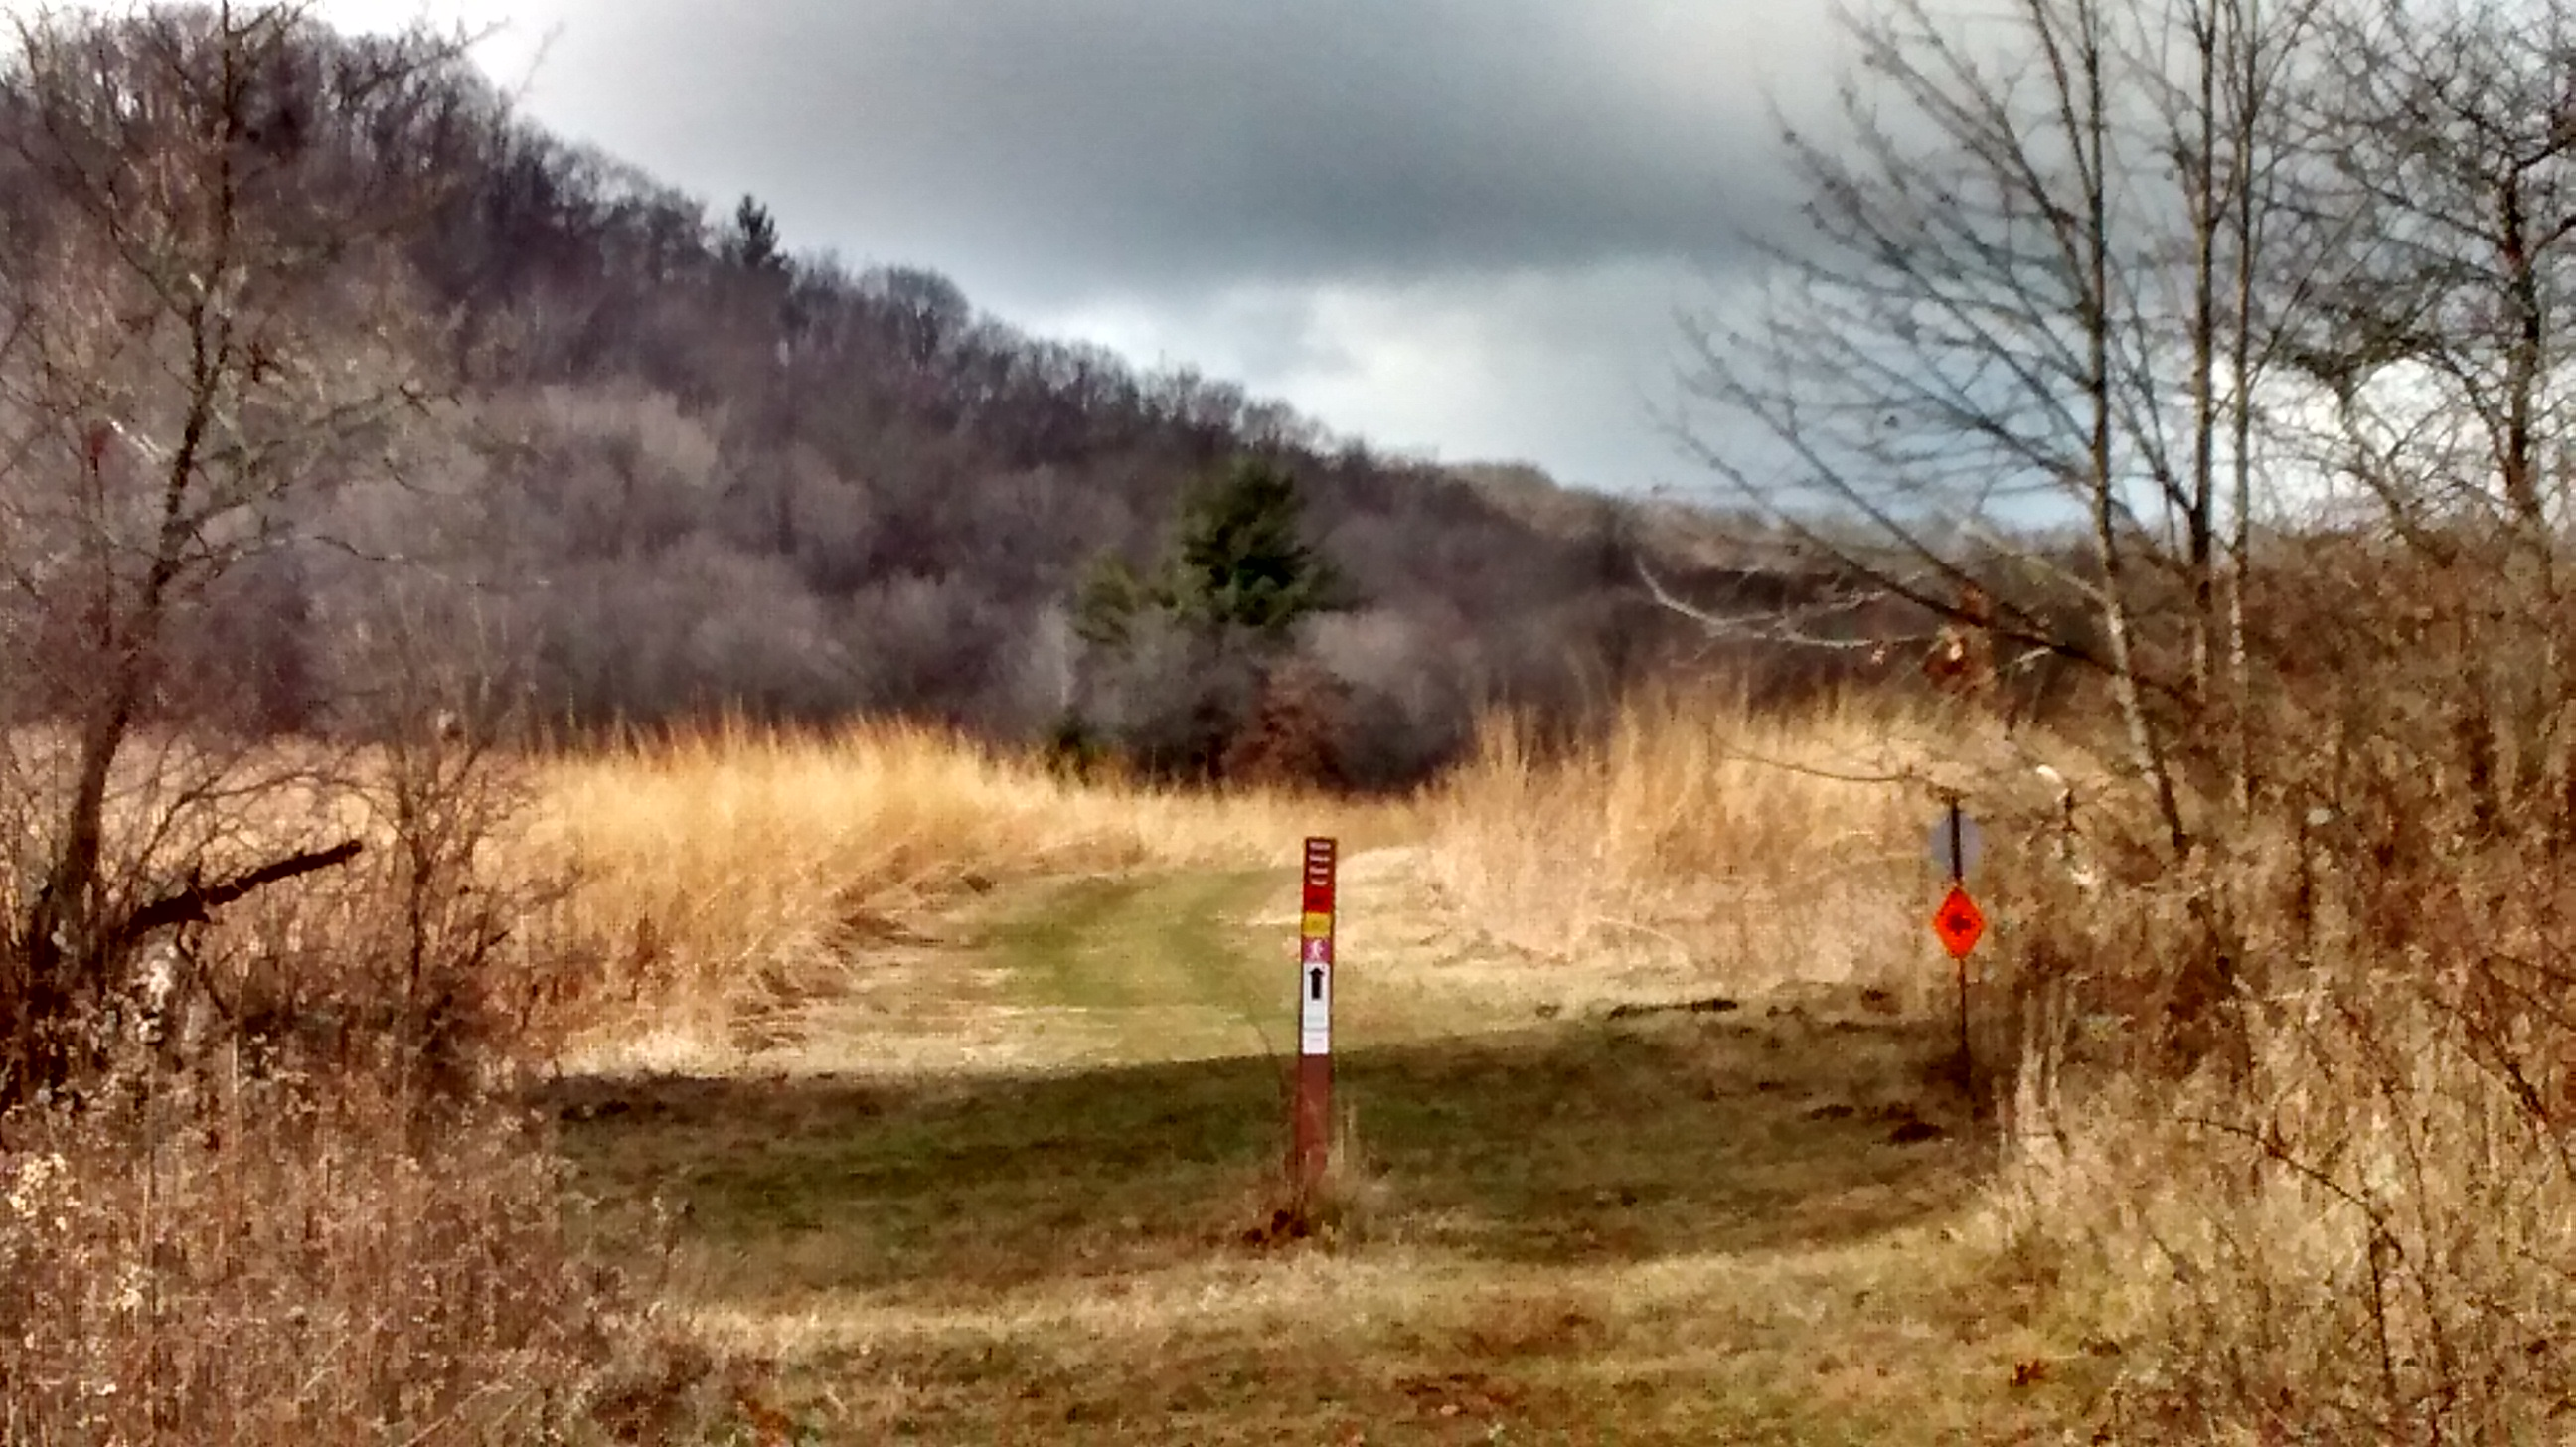 BHrock field 3 afternoon 12-27-15.jpg